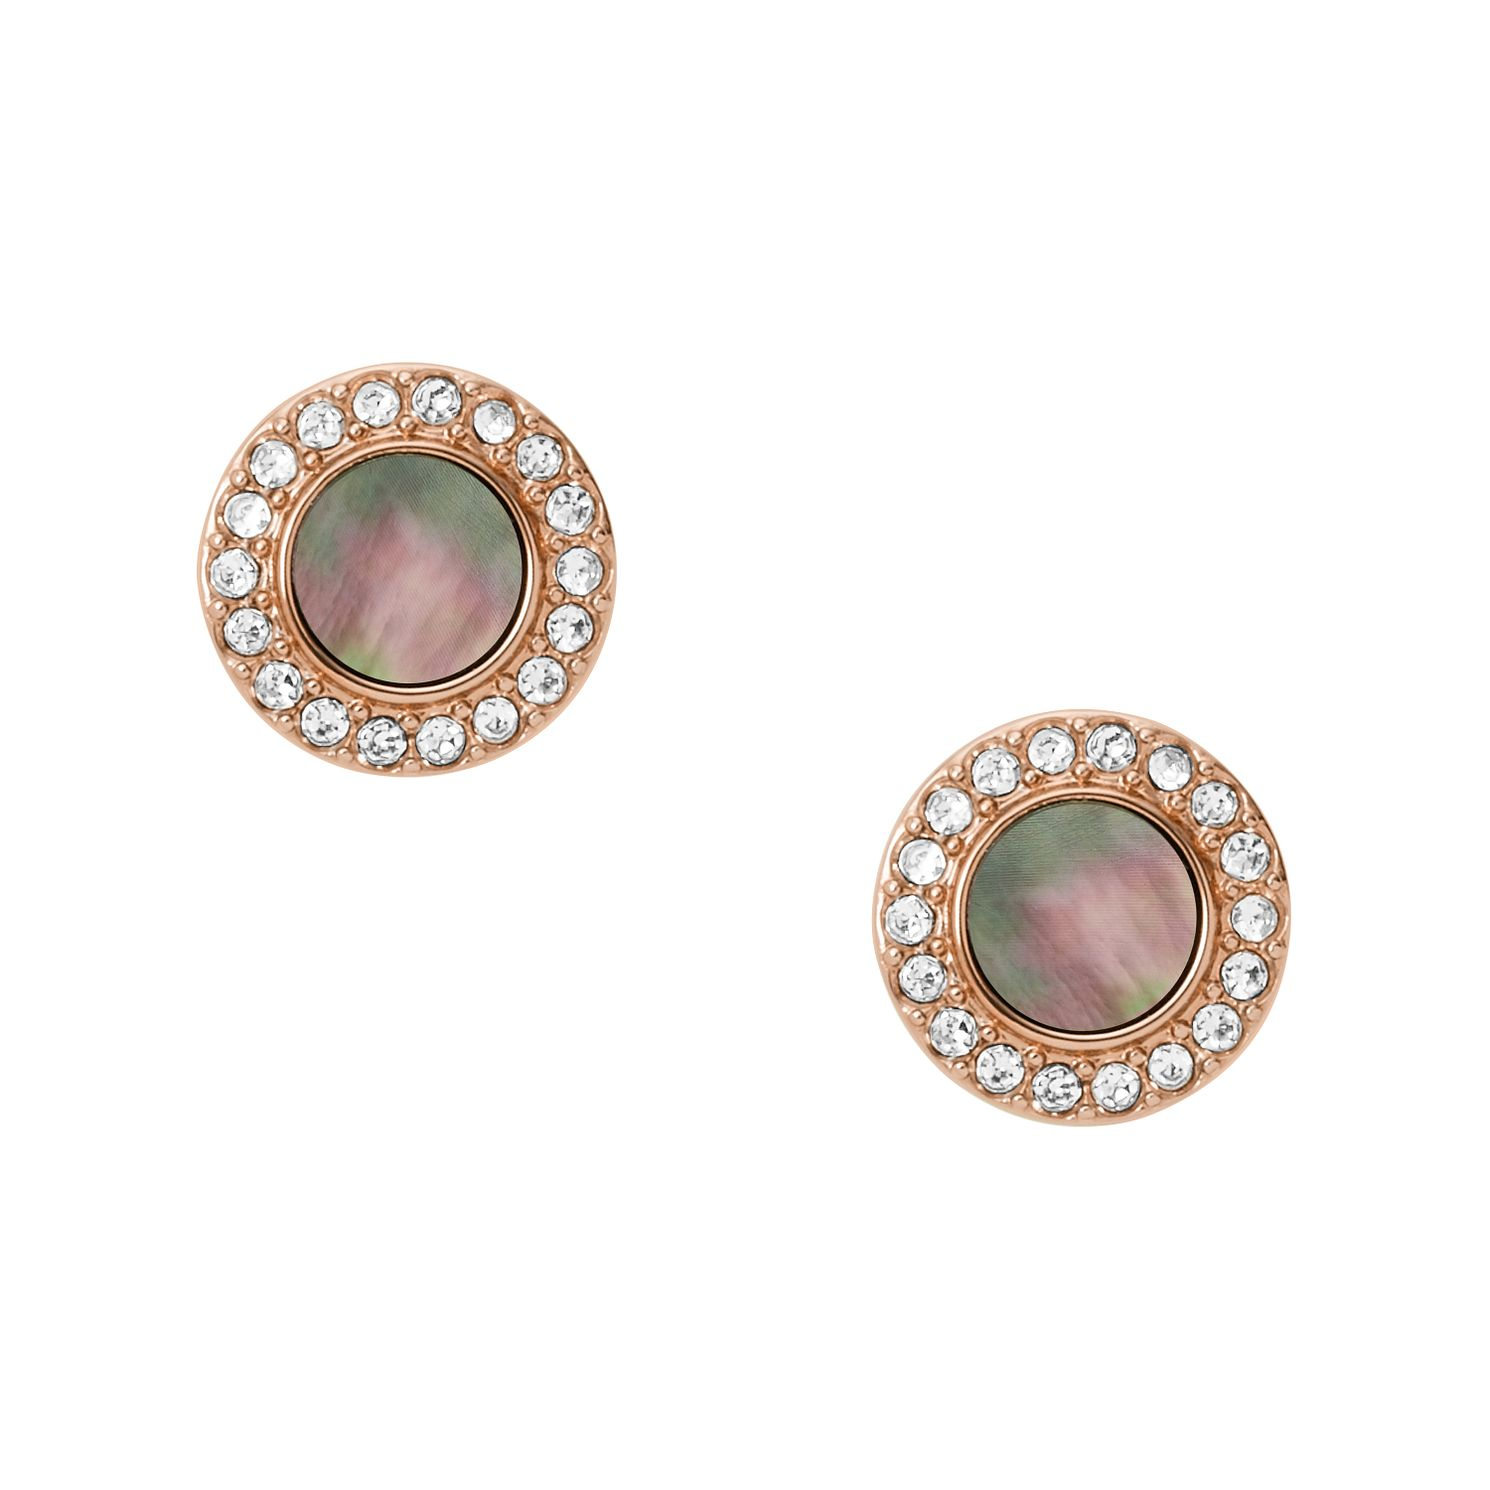 Fossil Ladies' Rose Gold Tone MOP Disc Stud Earrings - Product number 3664457